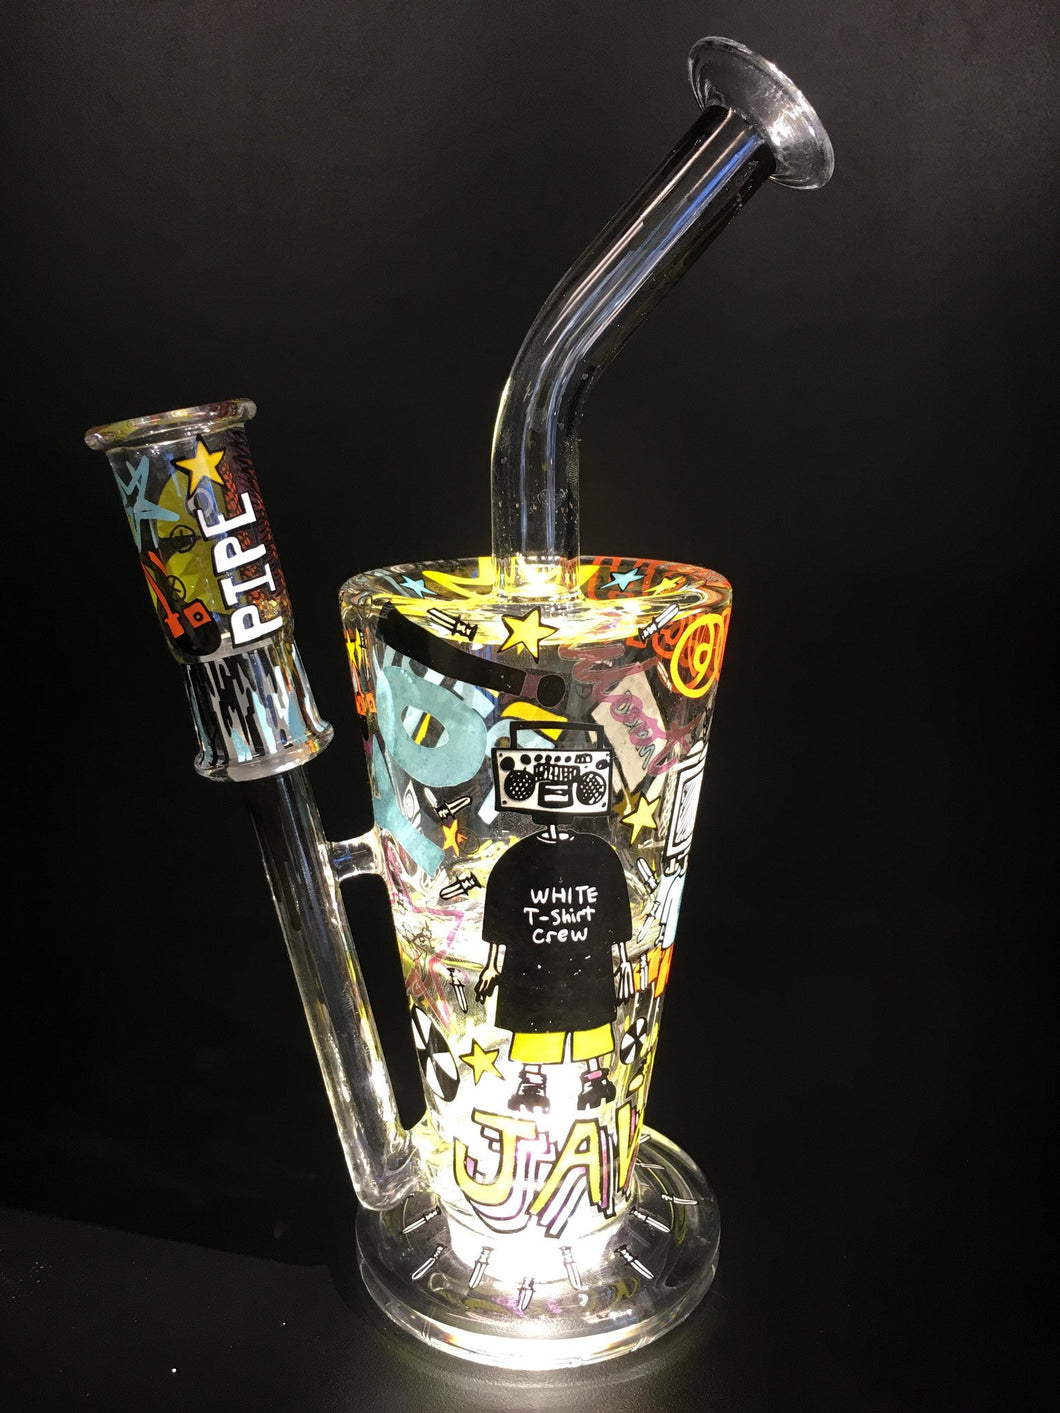 Tagged Sundae Cup by Hitman & Ouchkick